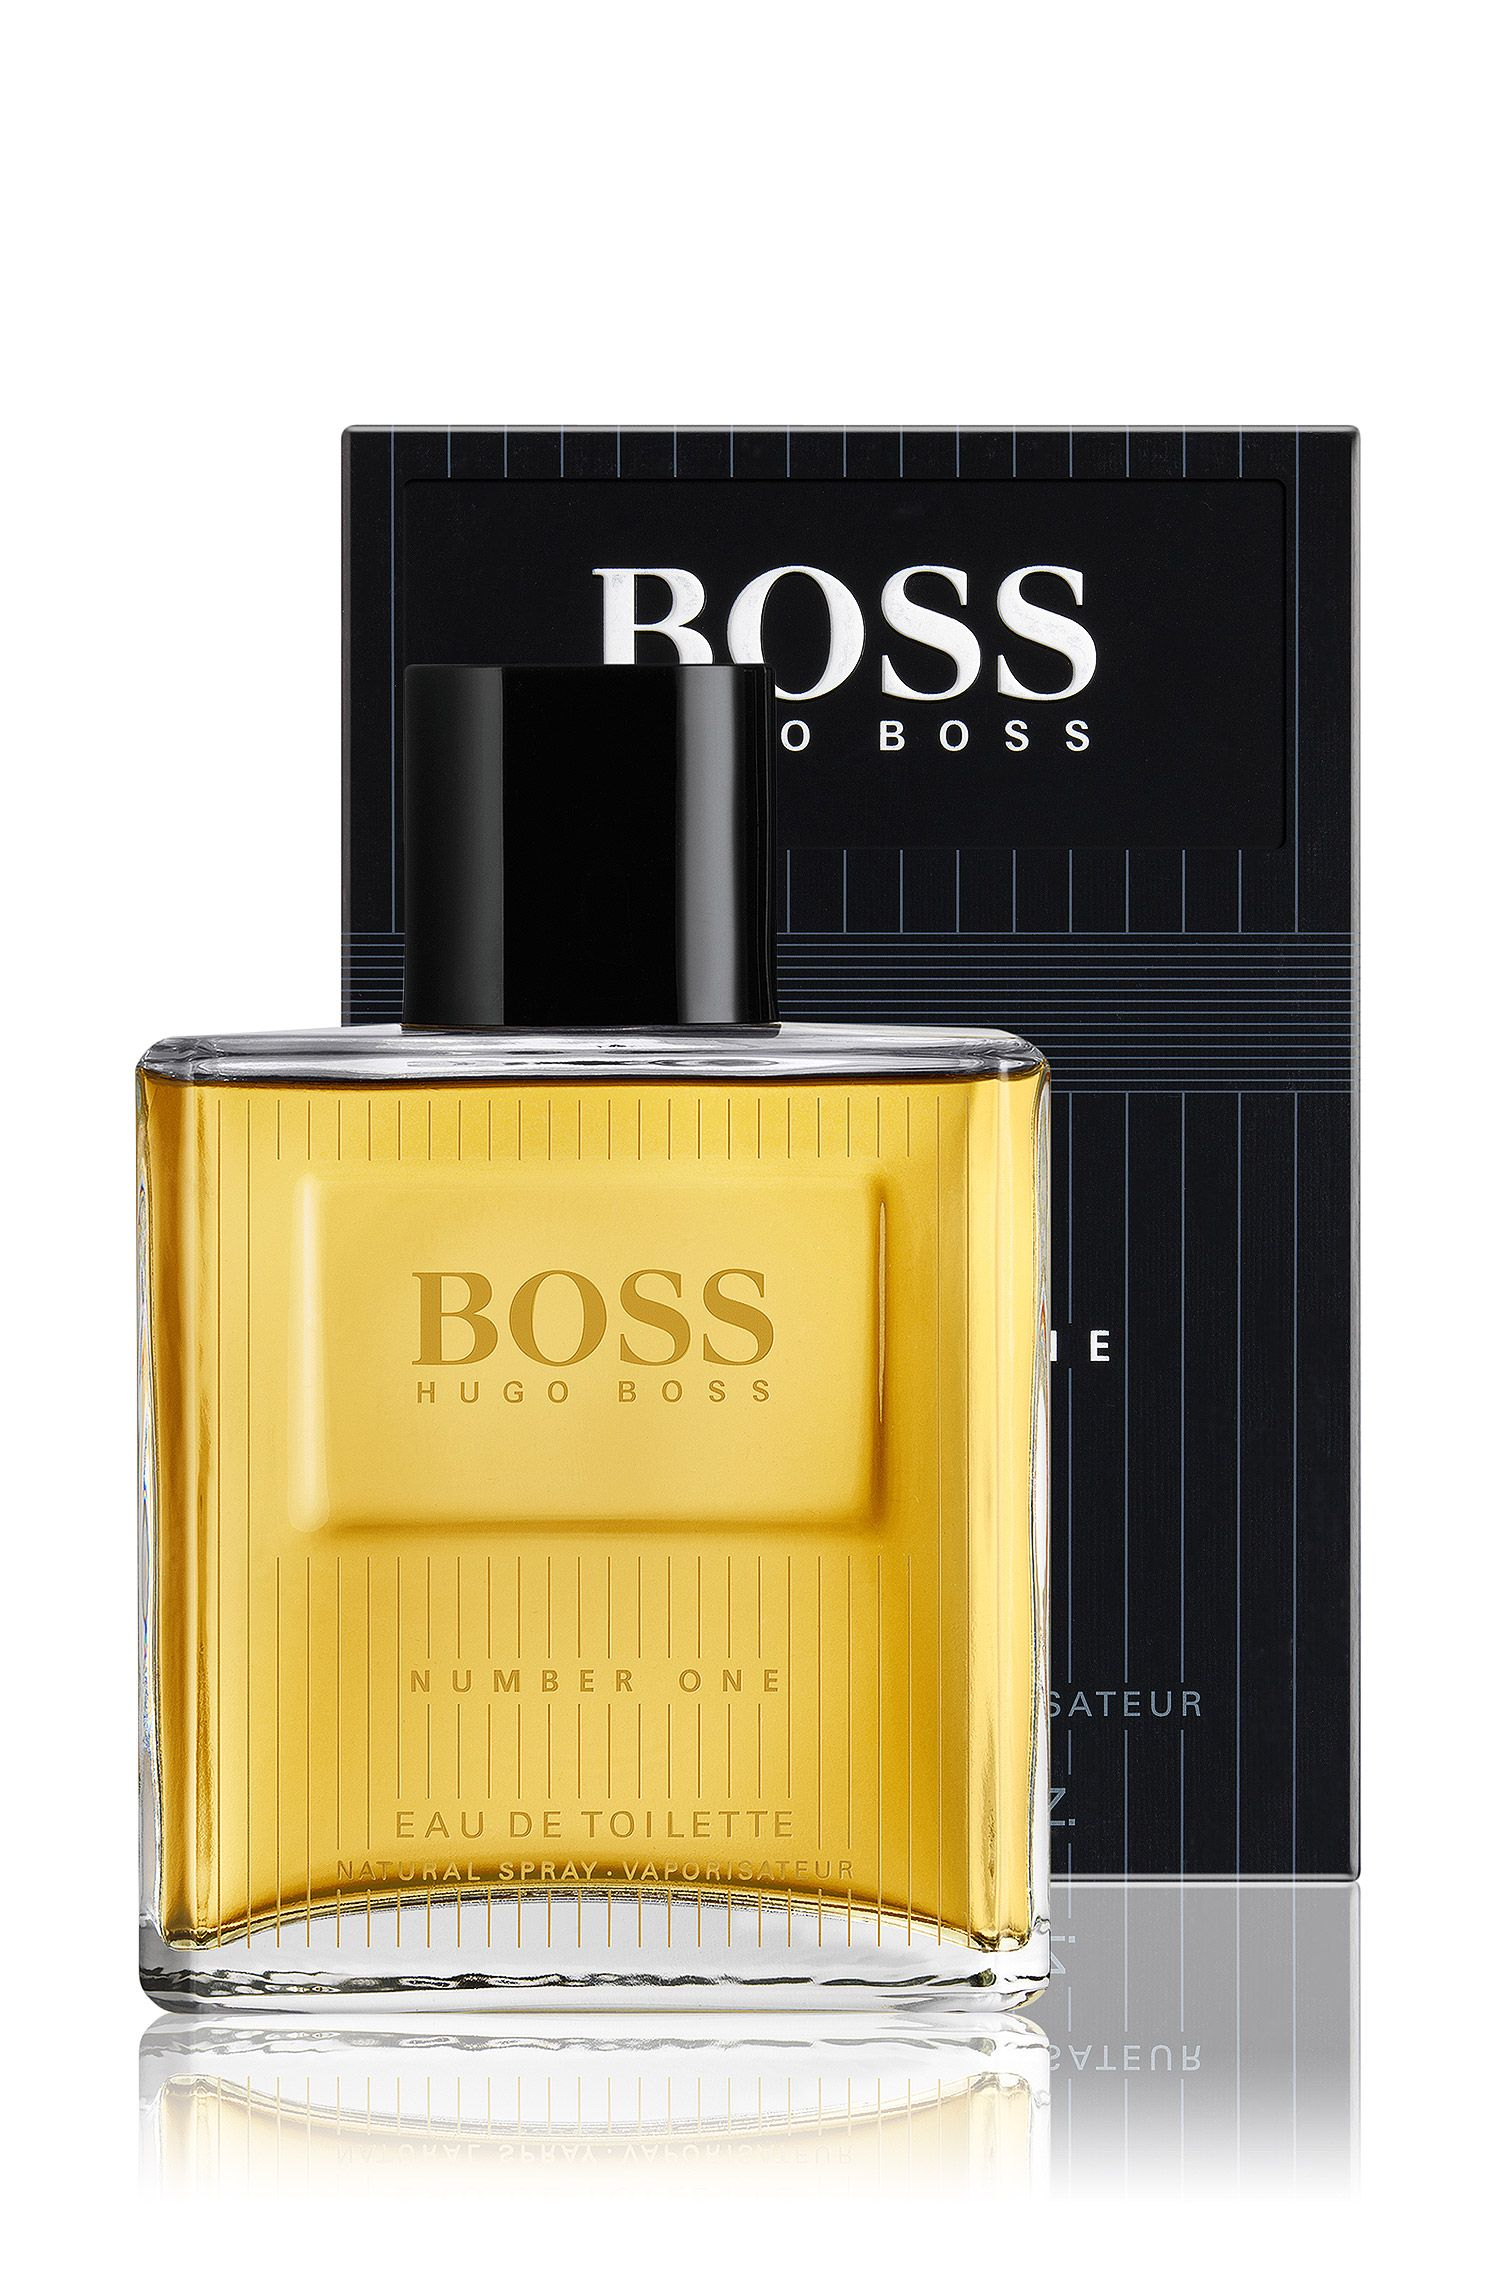 'BOSS Number One' eau de toilette 125 ml